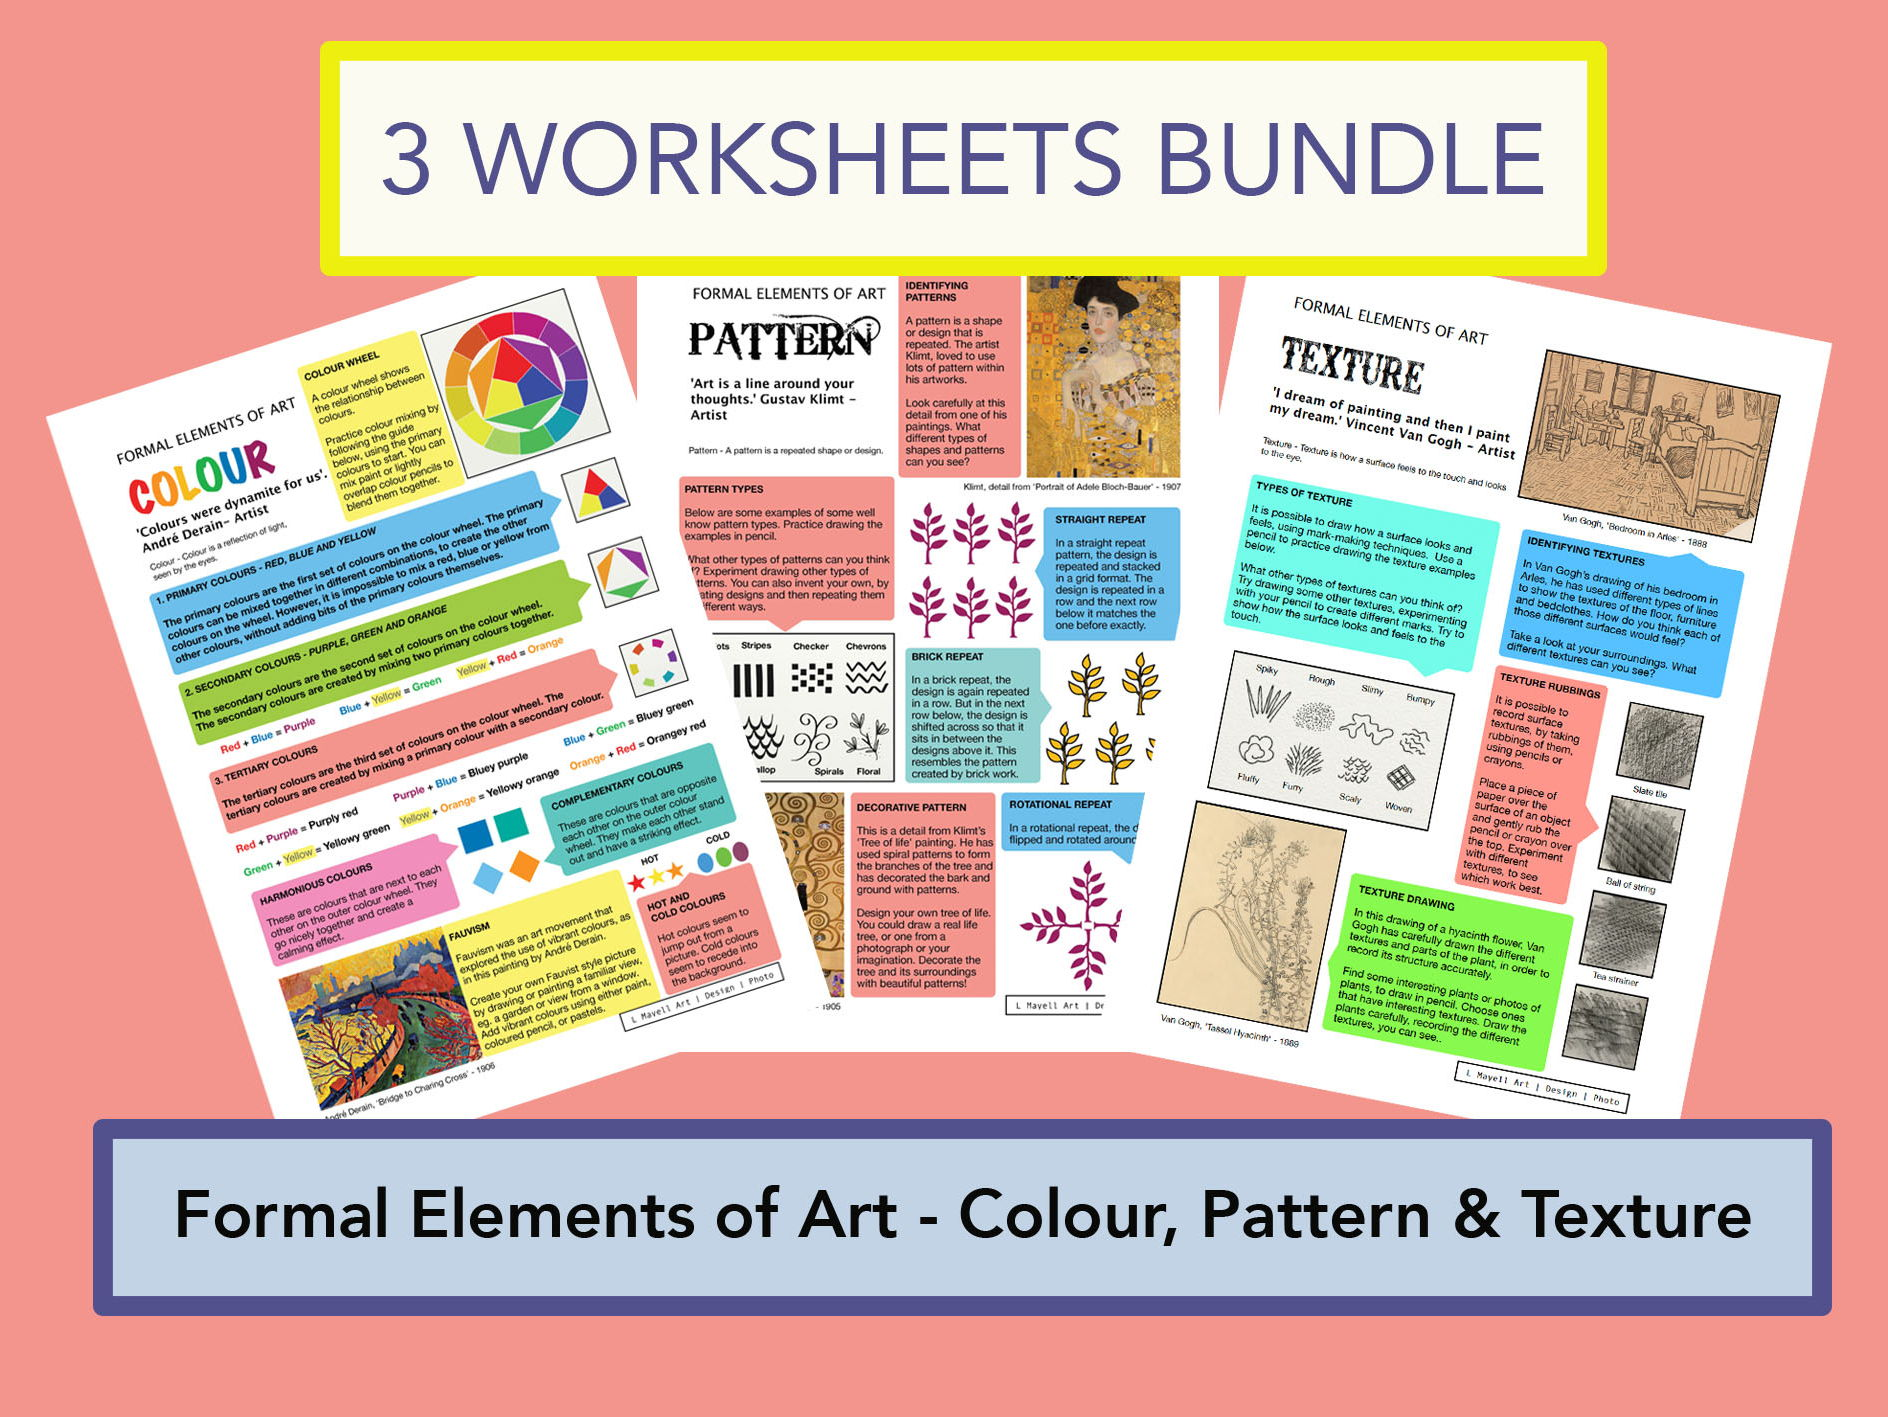 Formal Elements of Art Bundle - Colour, Pattern and Texture